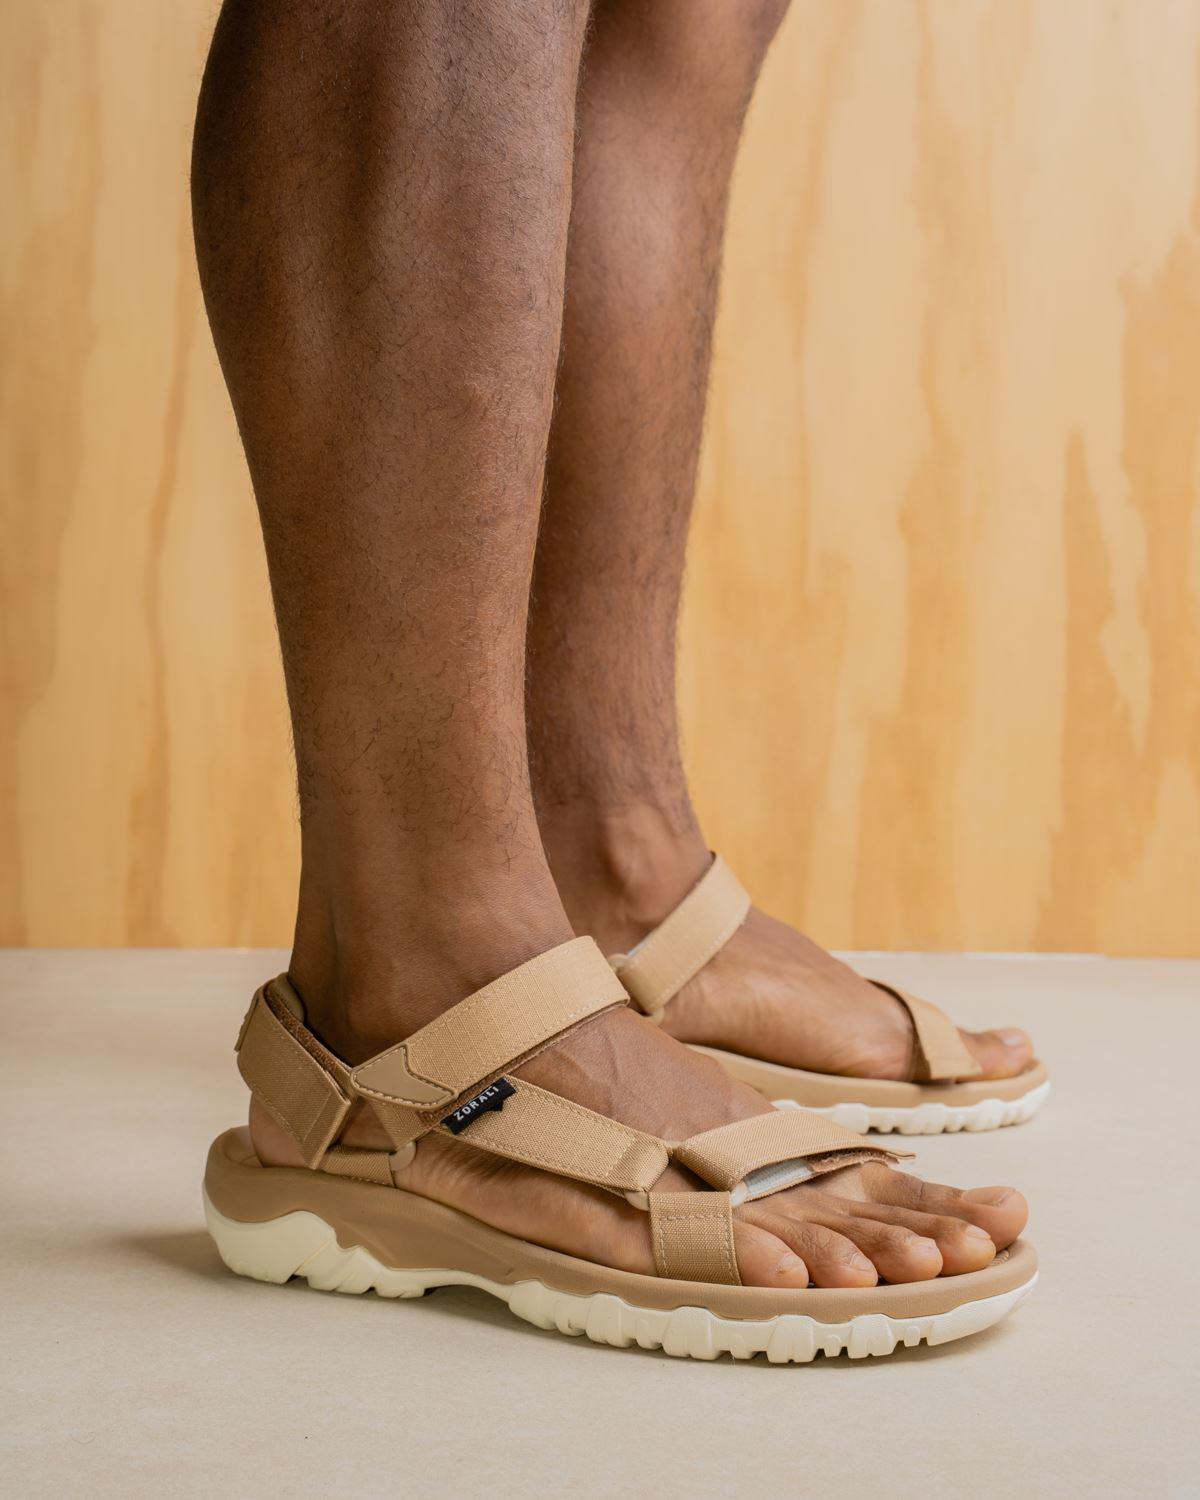 Highlands Sandals 2.0 Tan Footwear Zorali